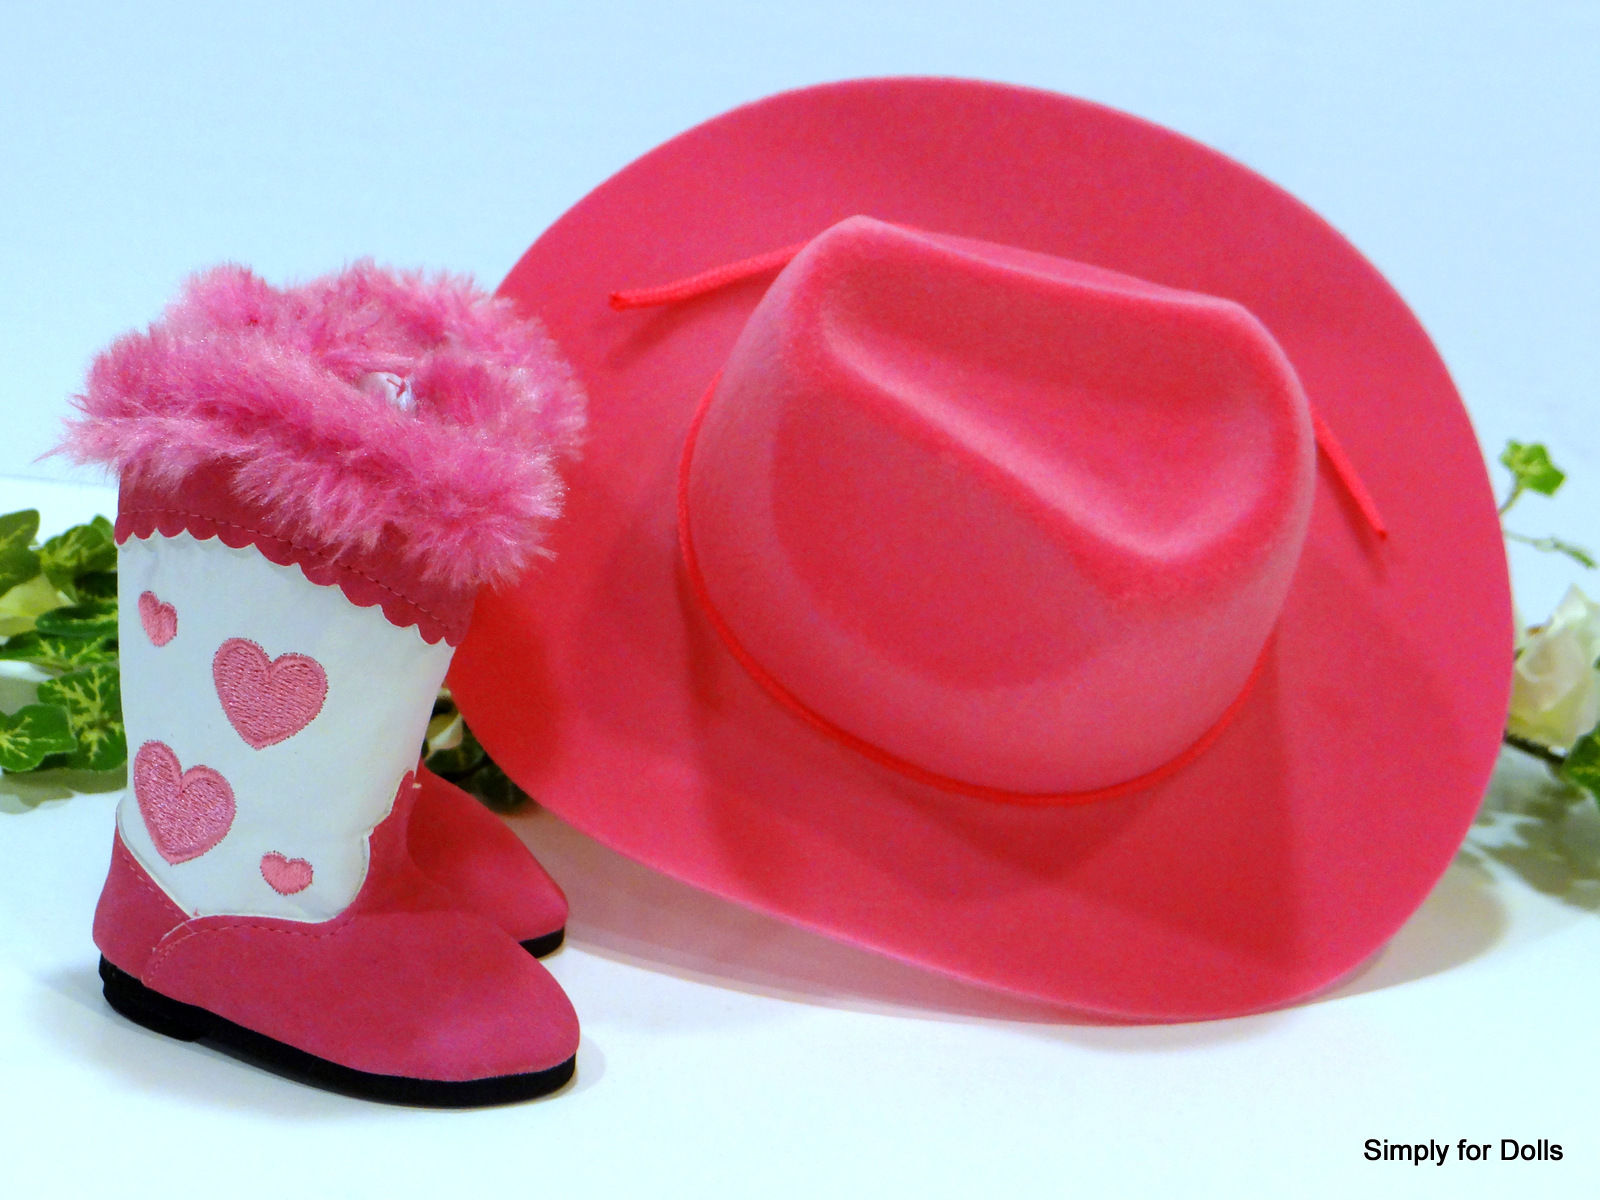 ee2a3336f12  9.98 - 2Pc Hot Pink White Hearts Cowboy Hat   Boots Fits 18